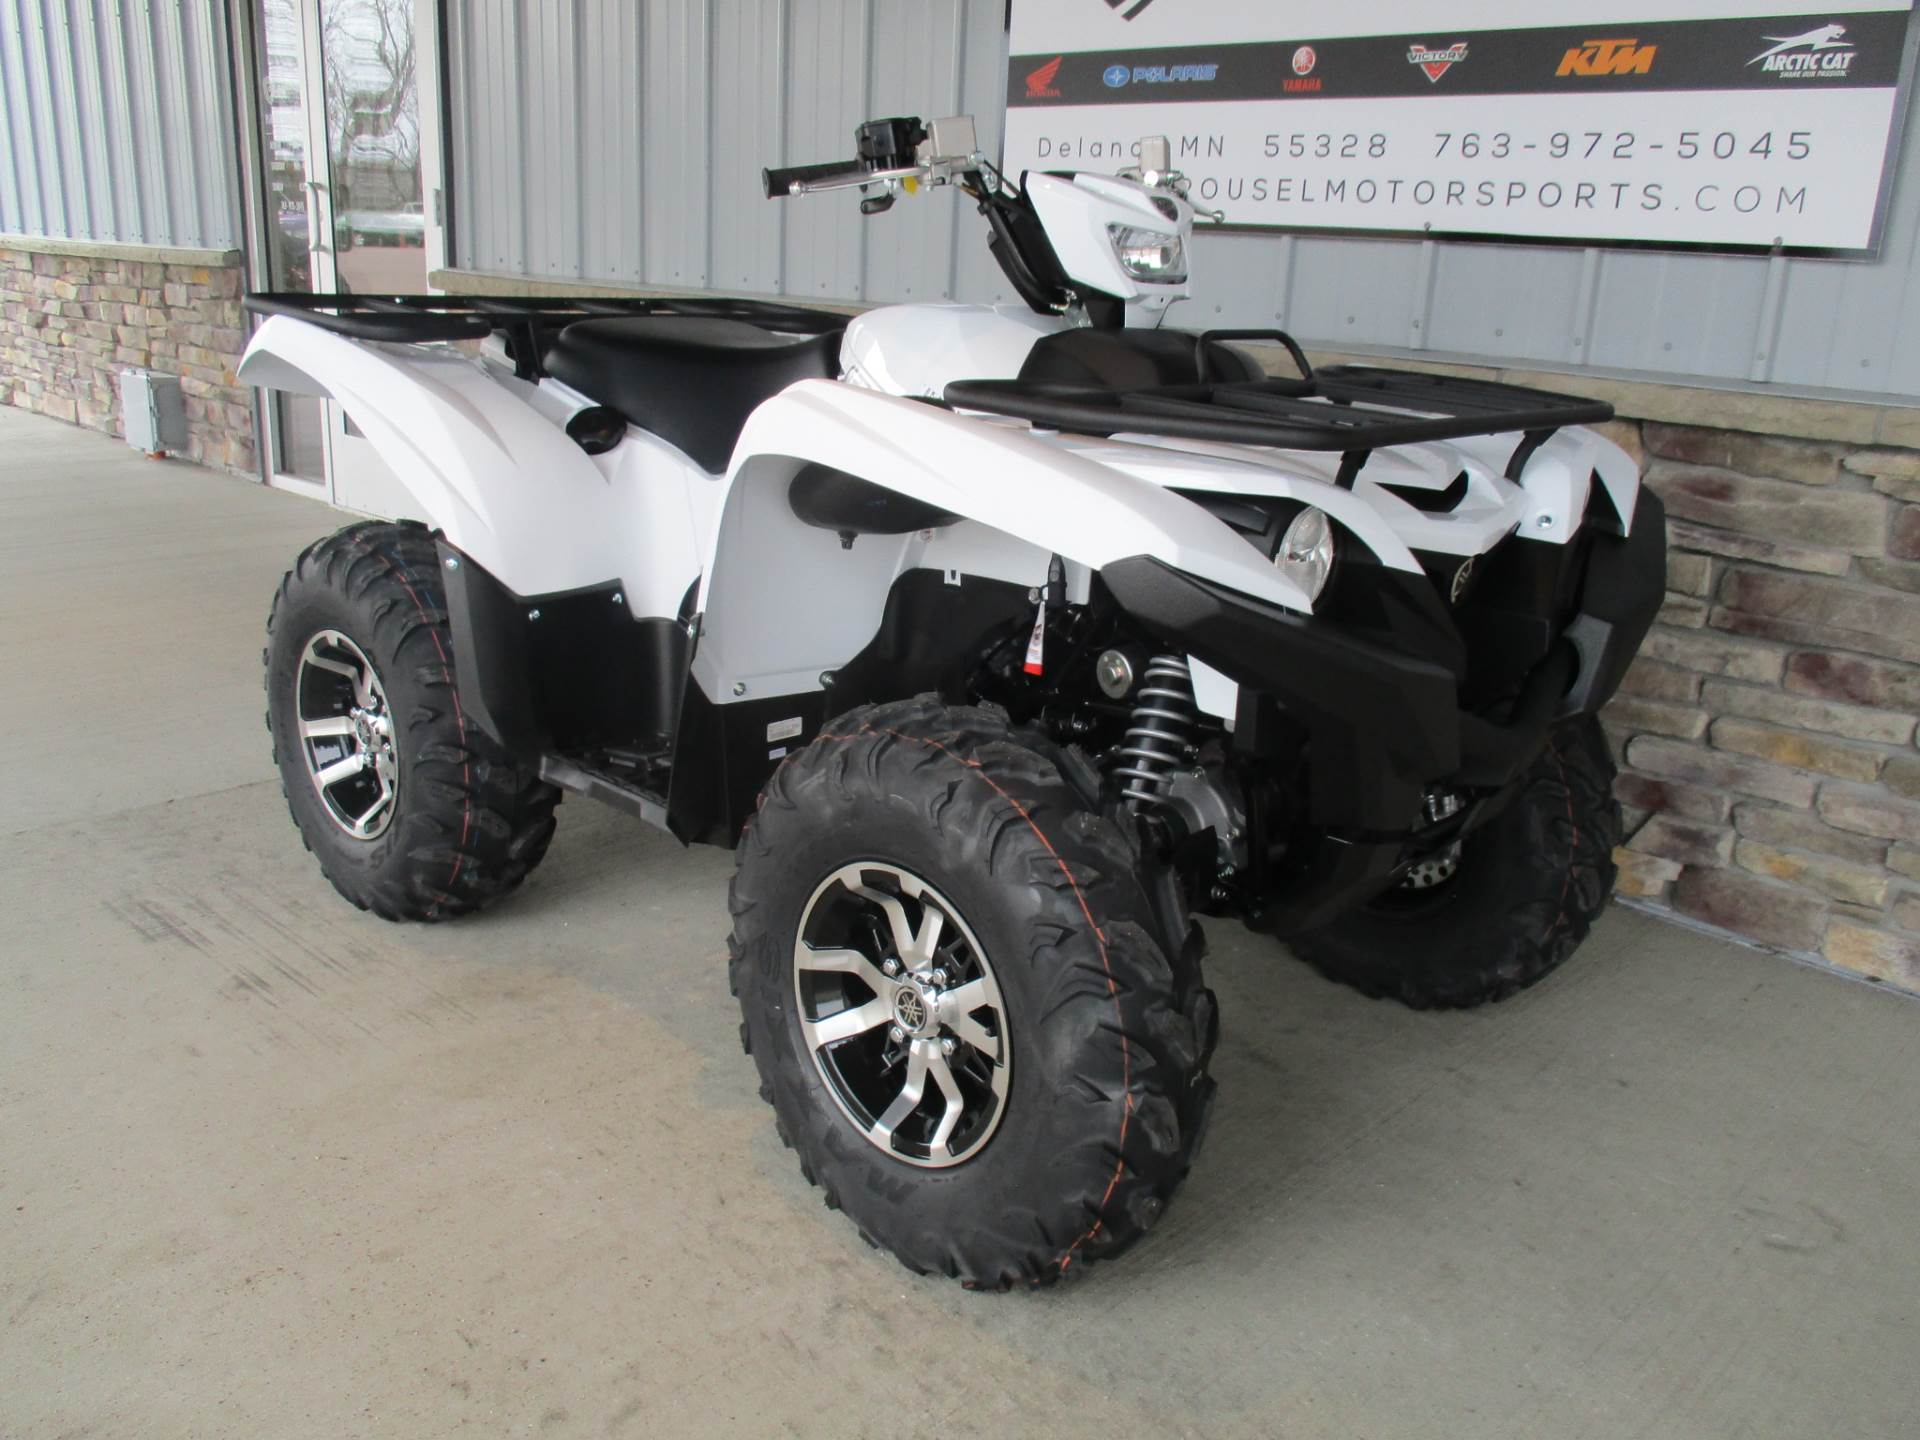 2017 Yamaha Grizzly EPS in Delano, Minnesota